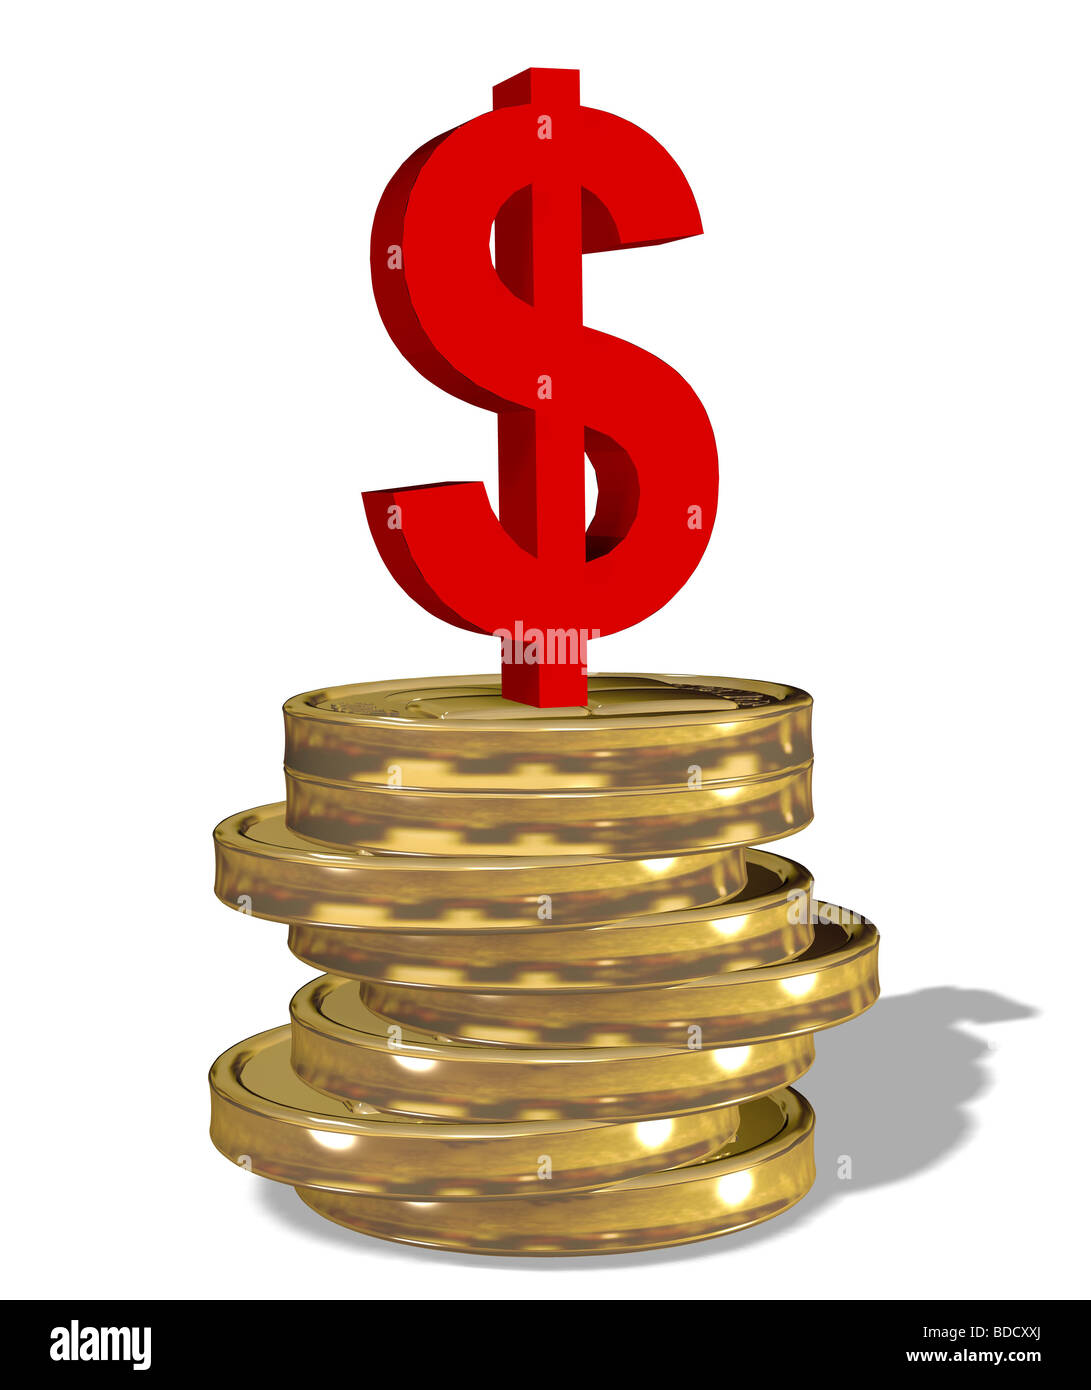 dollar sign on a stack of coins - Stock Image